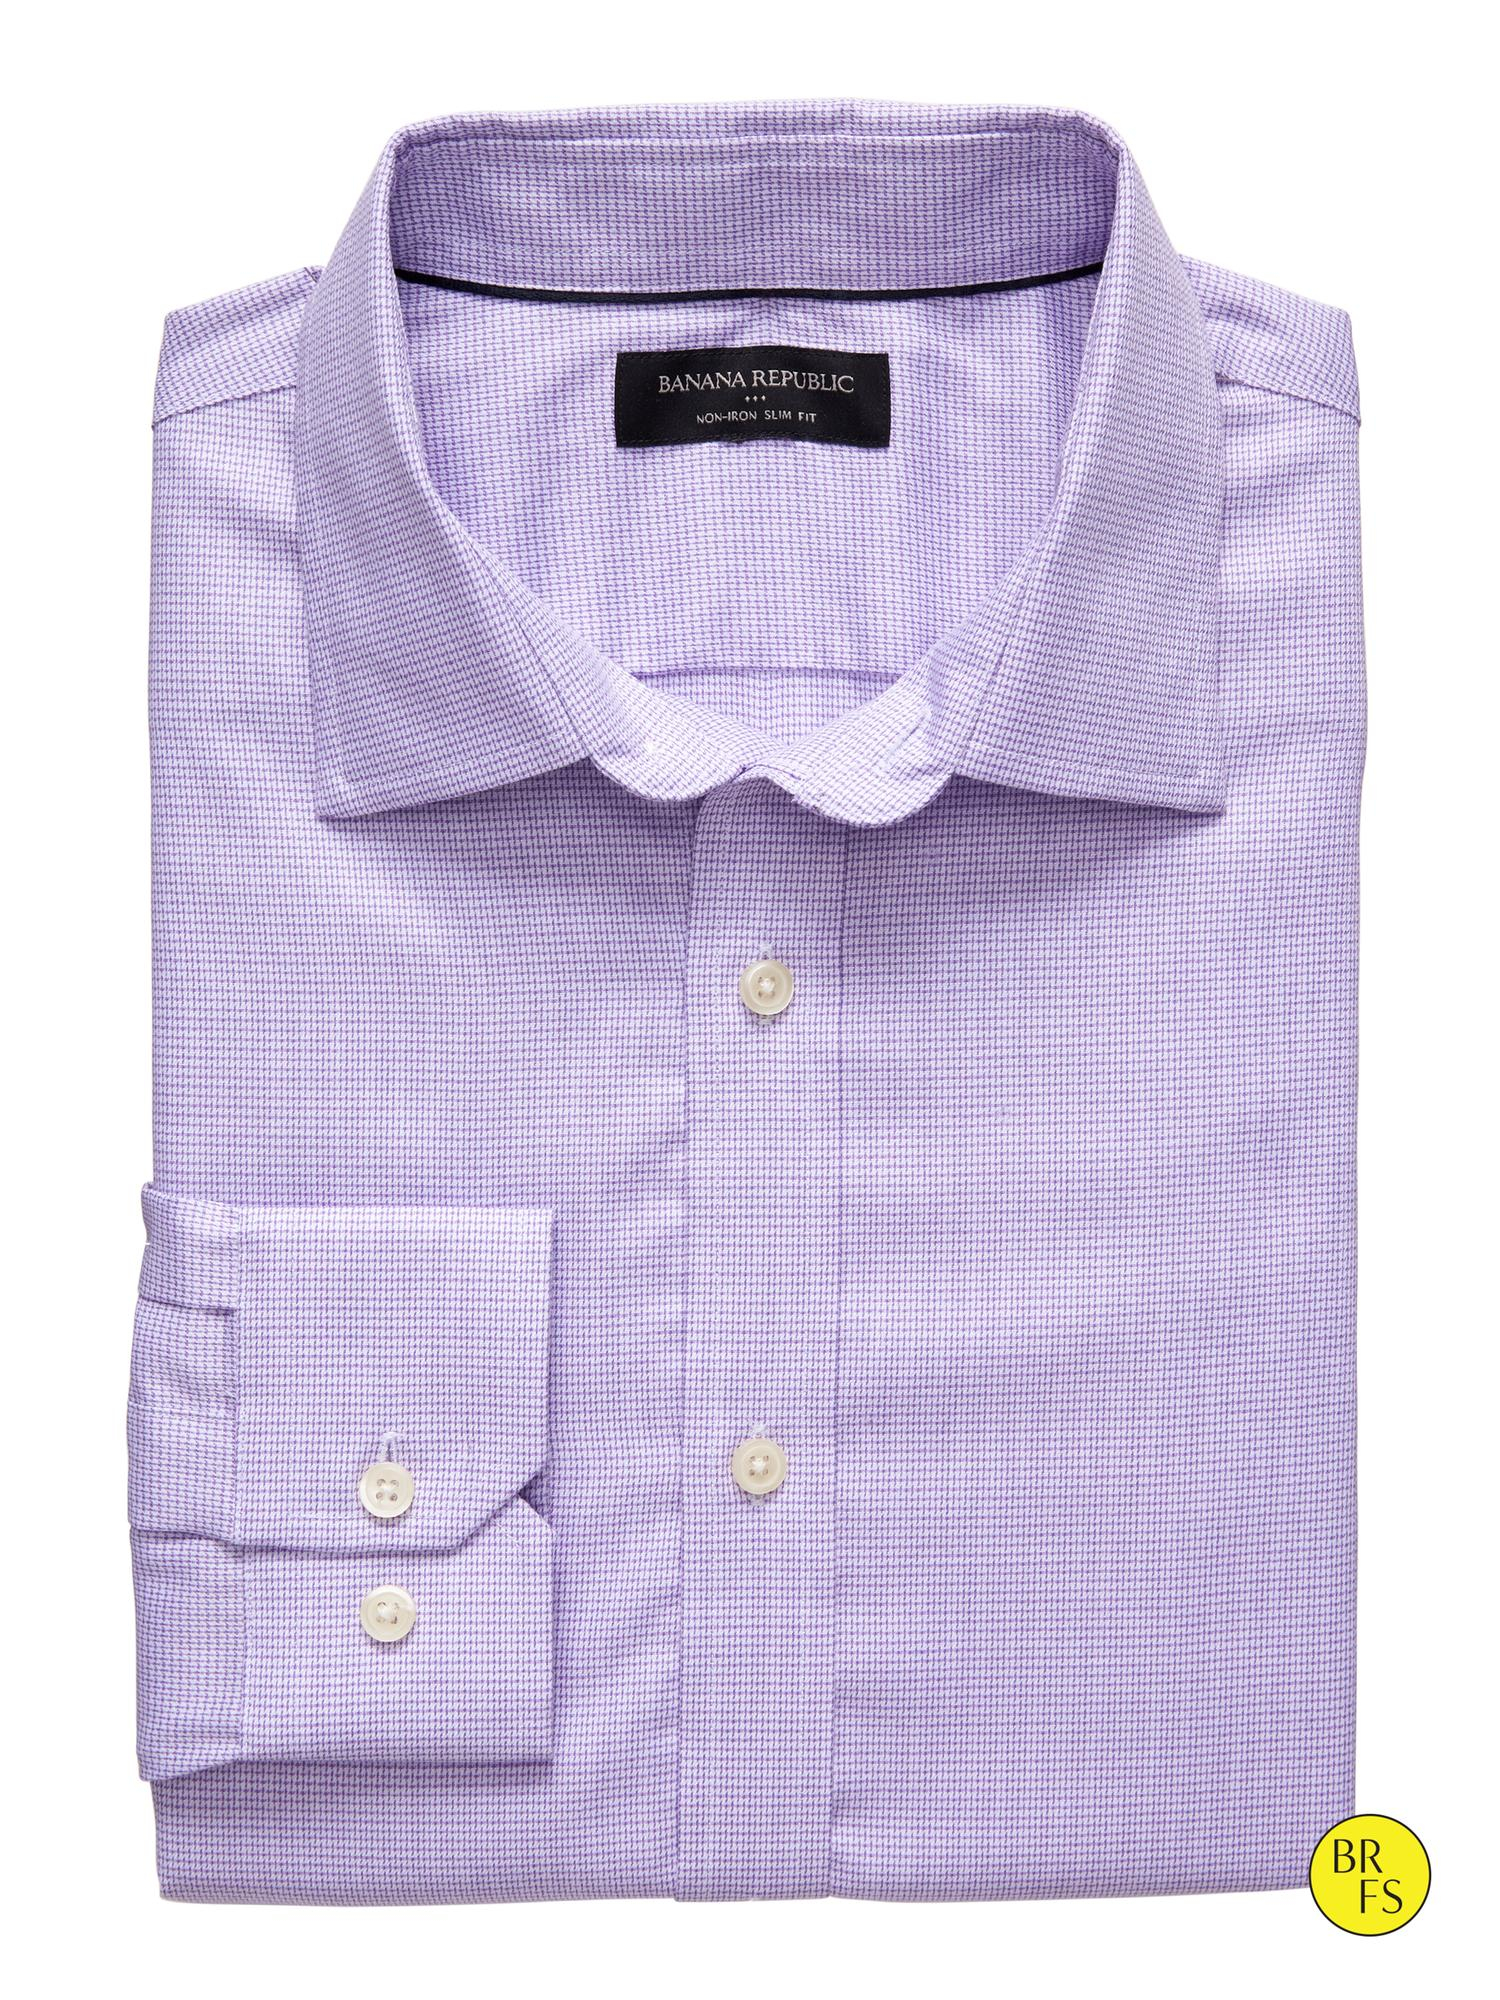 Banana republic factory slim fit non iron purple print for Slim fit non iron dress shirts